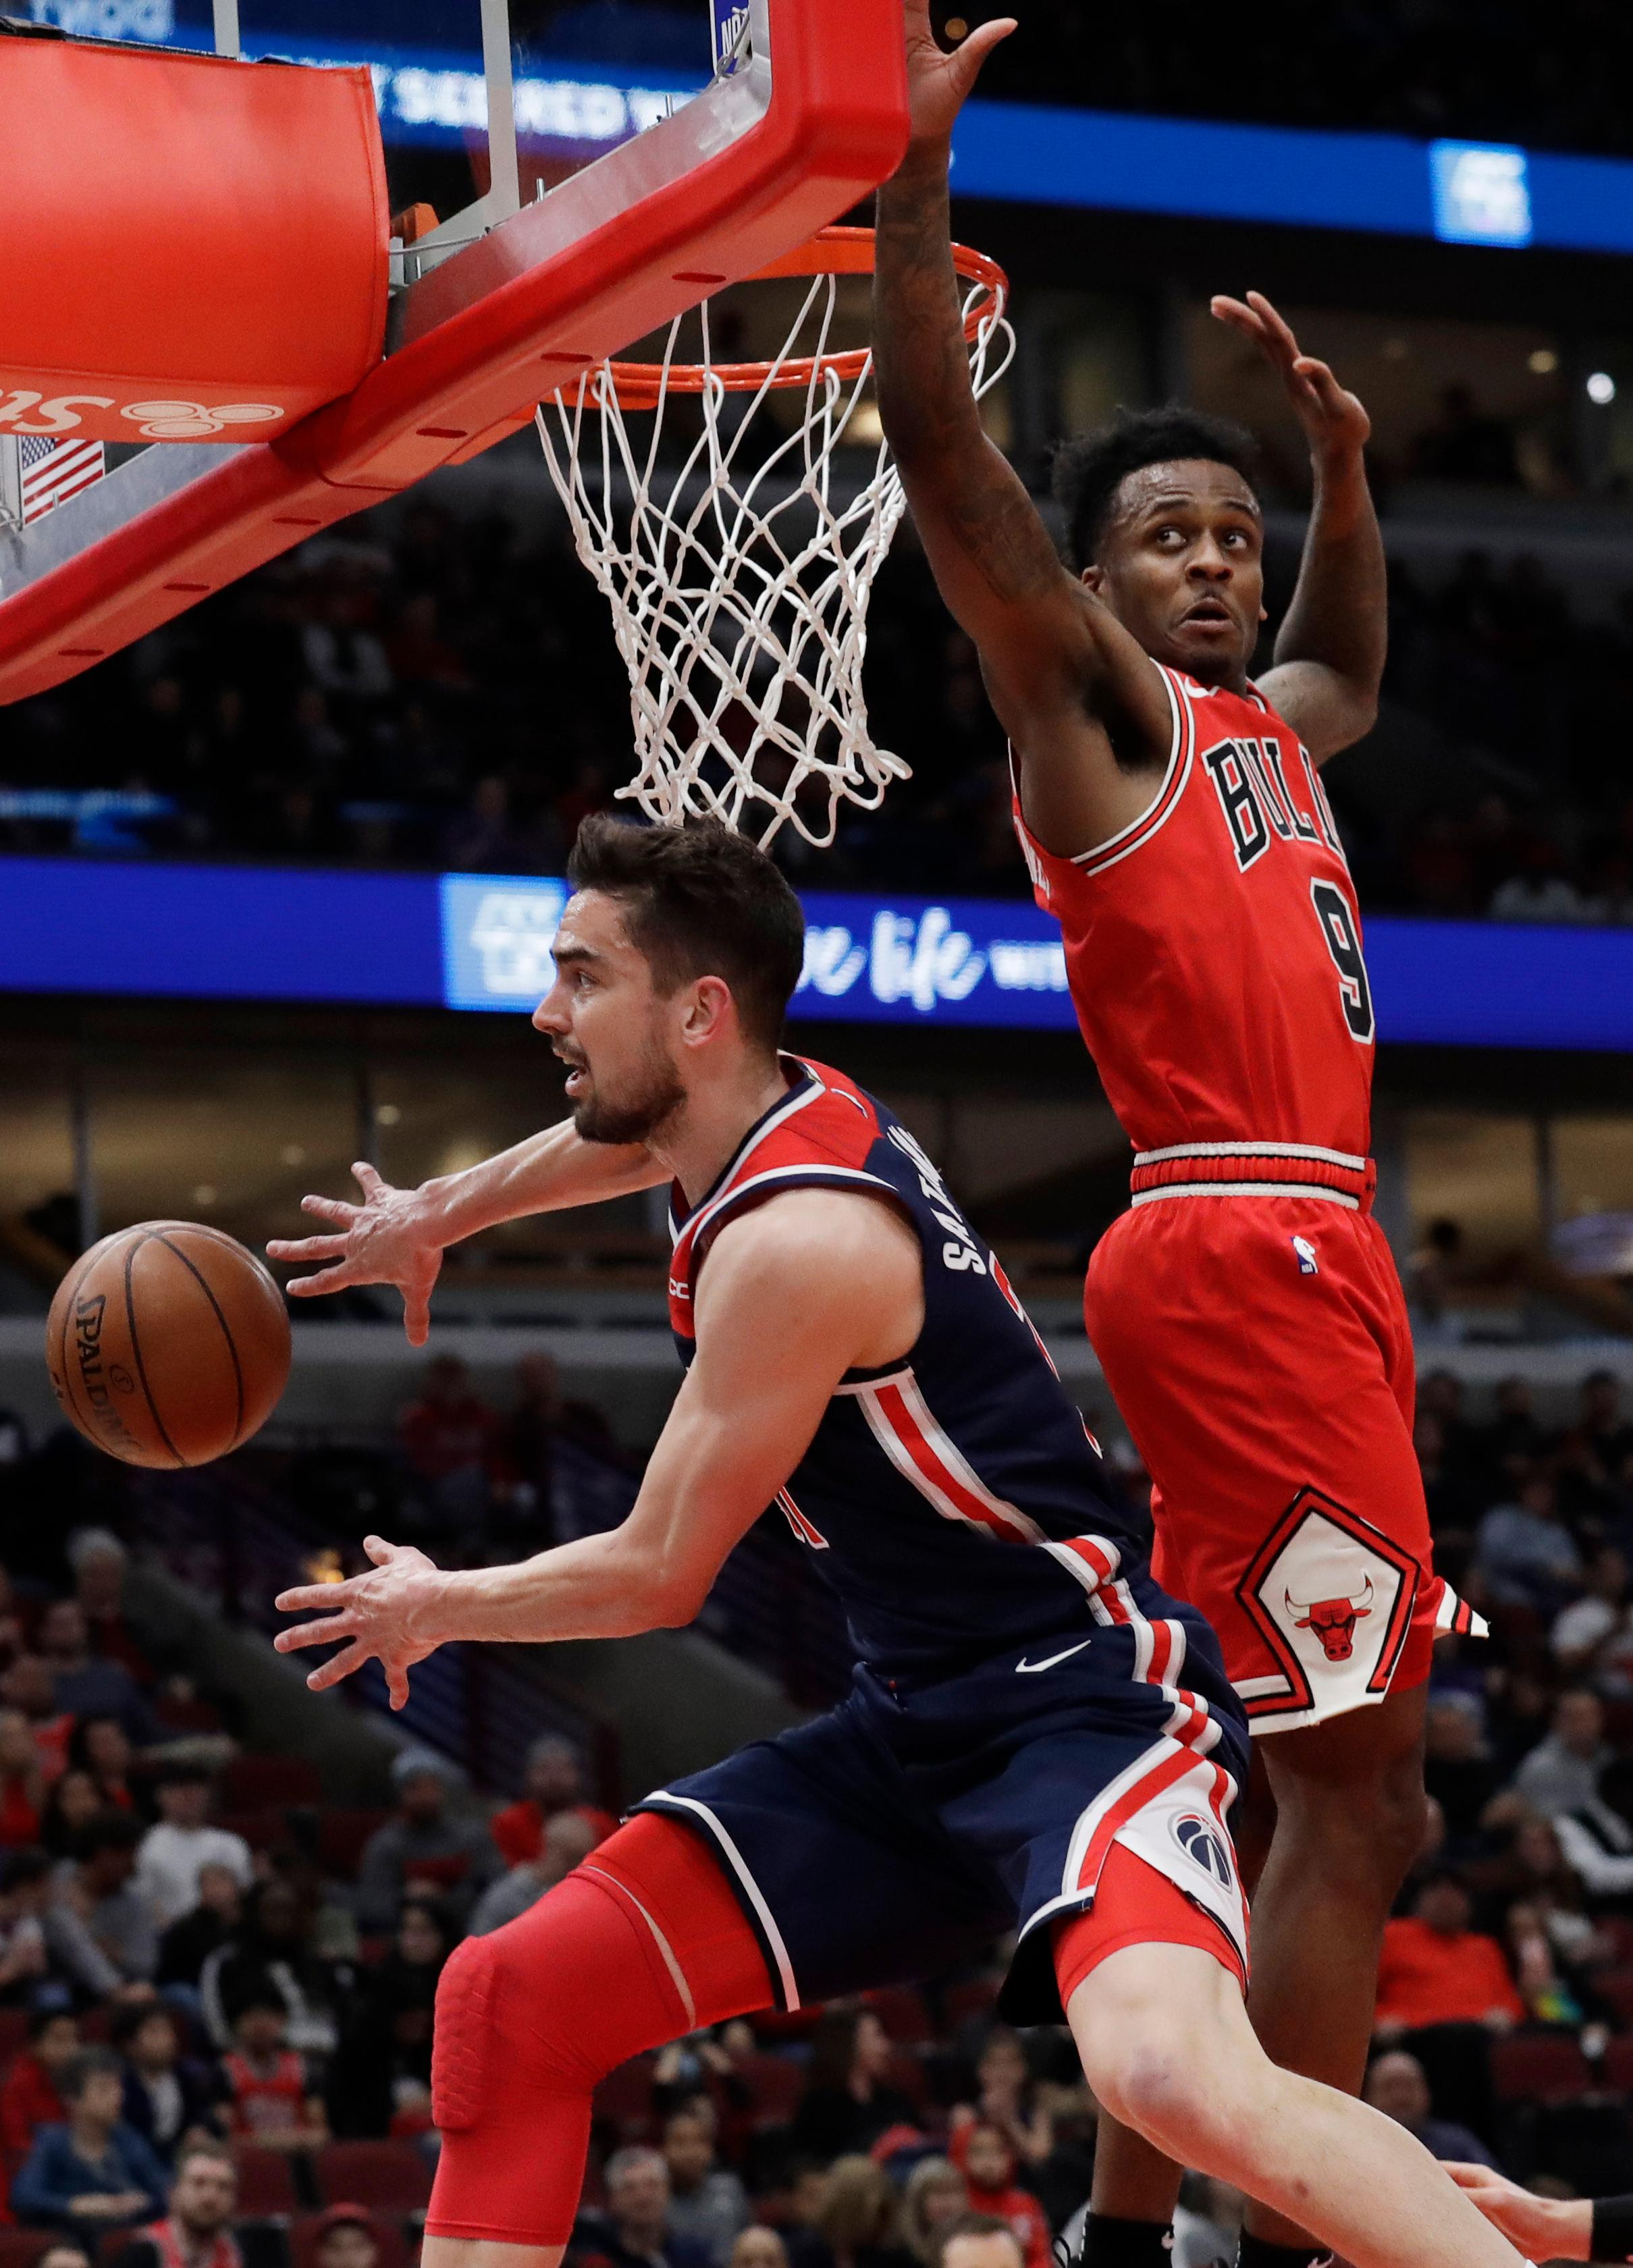 Washington Wizards guard/forward Tomas Satoransky, left, passes the ball as Chicago Bulls guard Antonio Blakeney defends during the first half of an NBA basketball game Wednesday, March 20, 2019, in Chicago. (AP Photo/Nam Y. Huh)